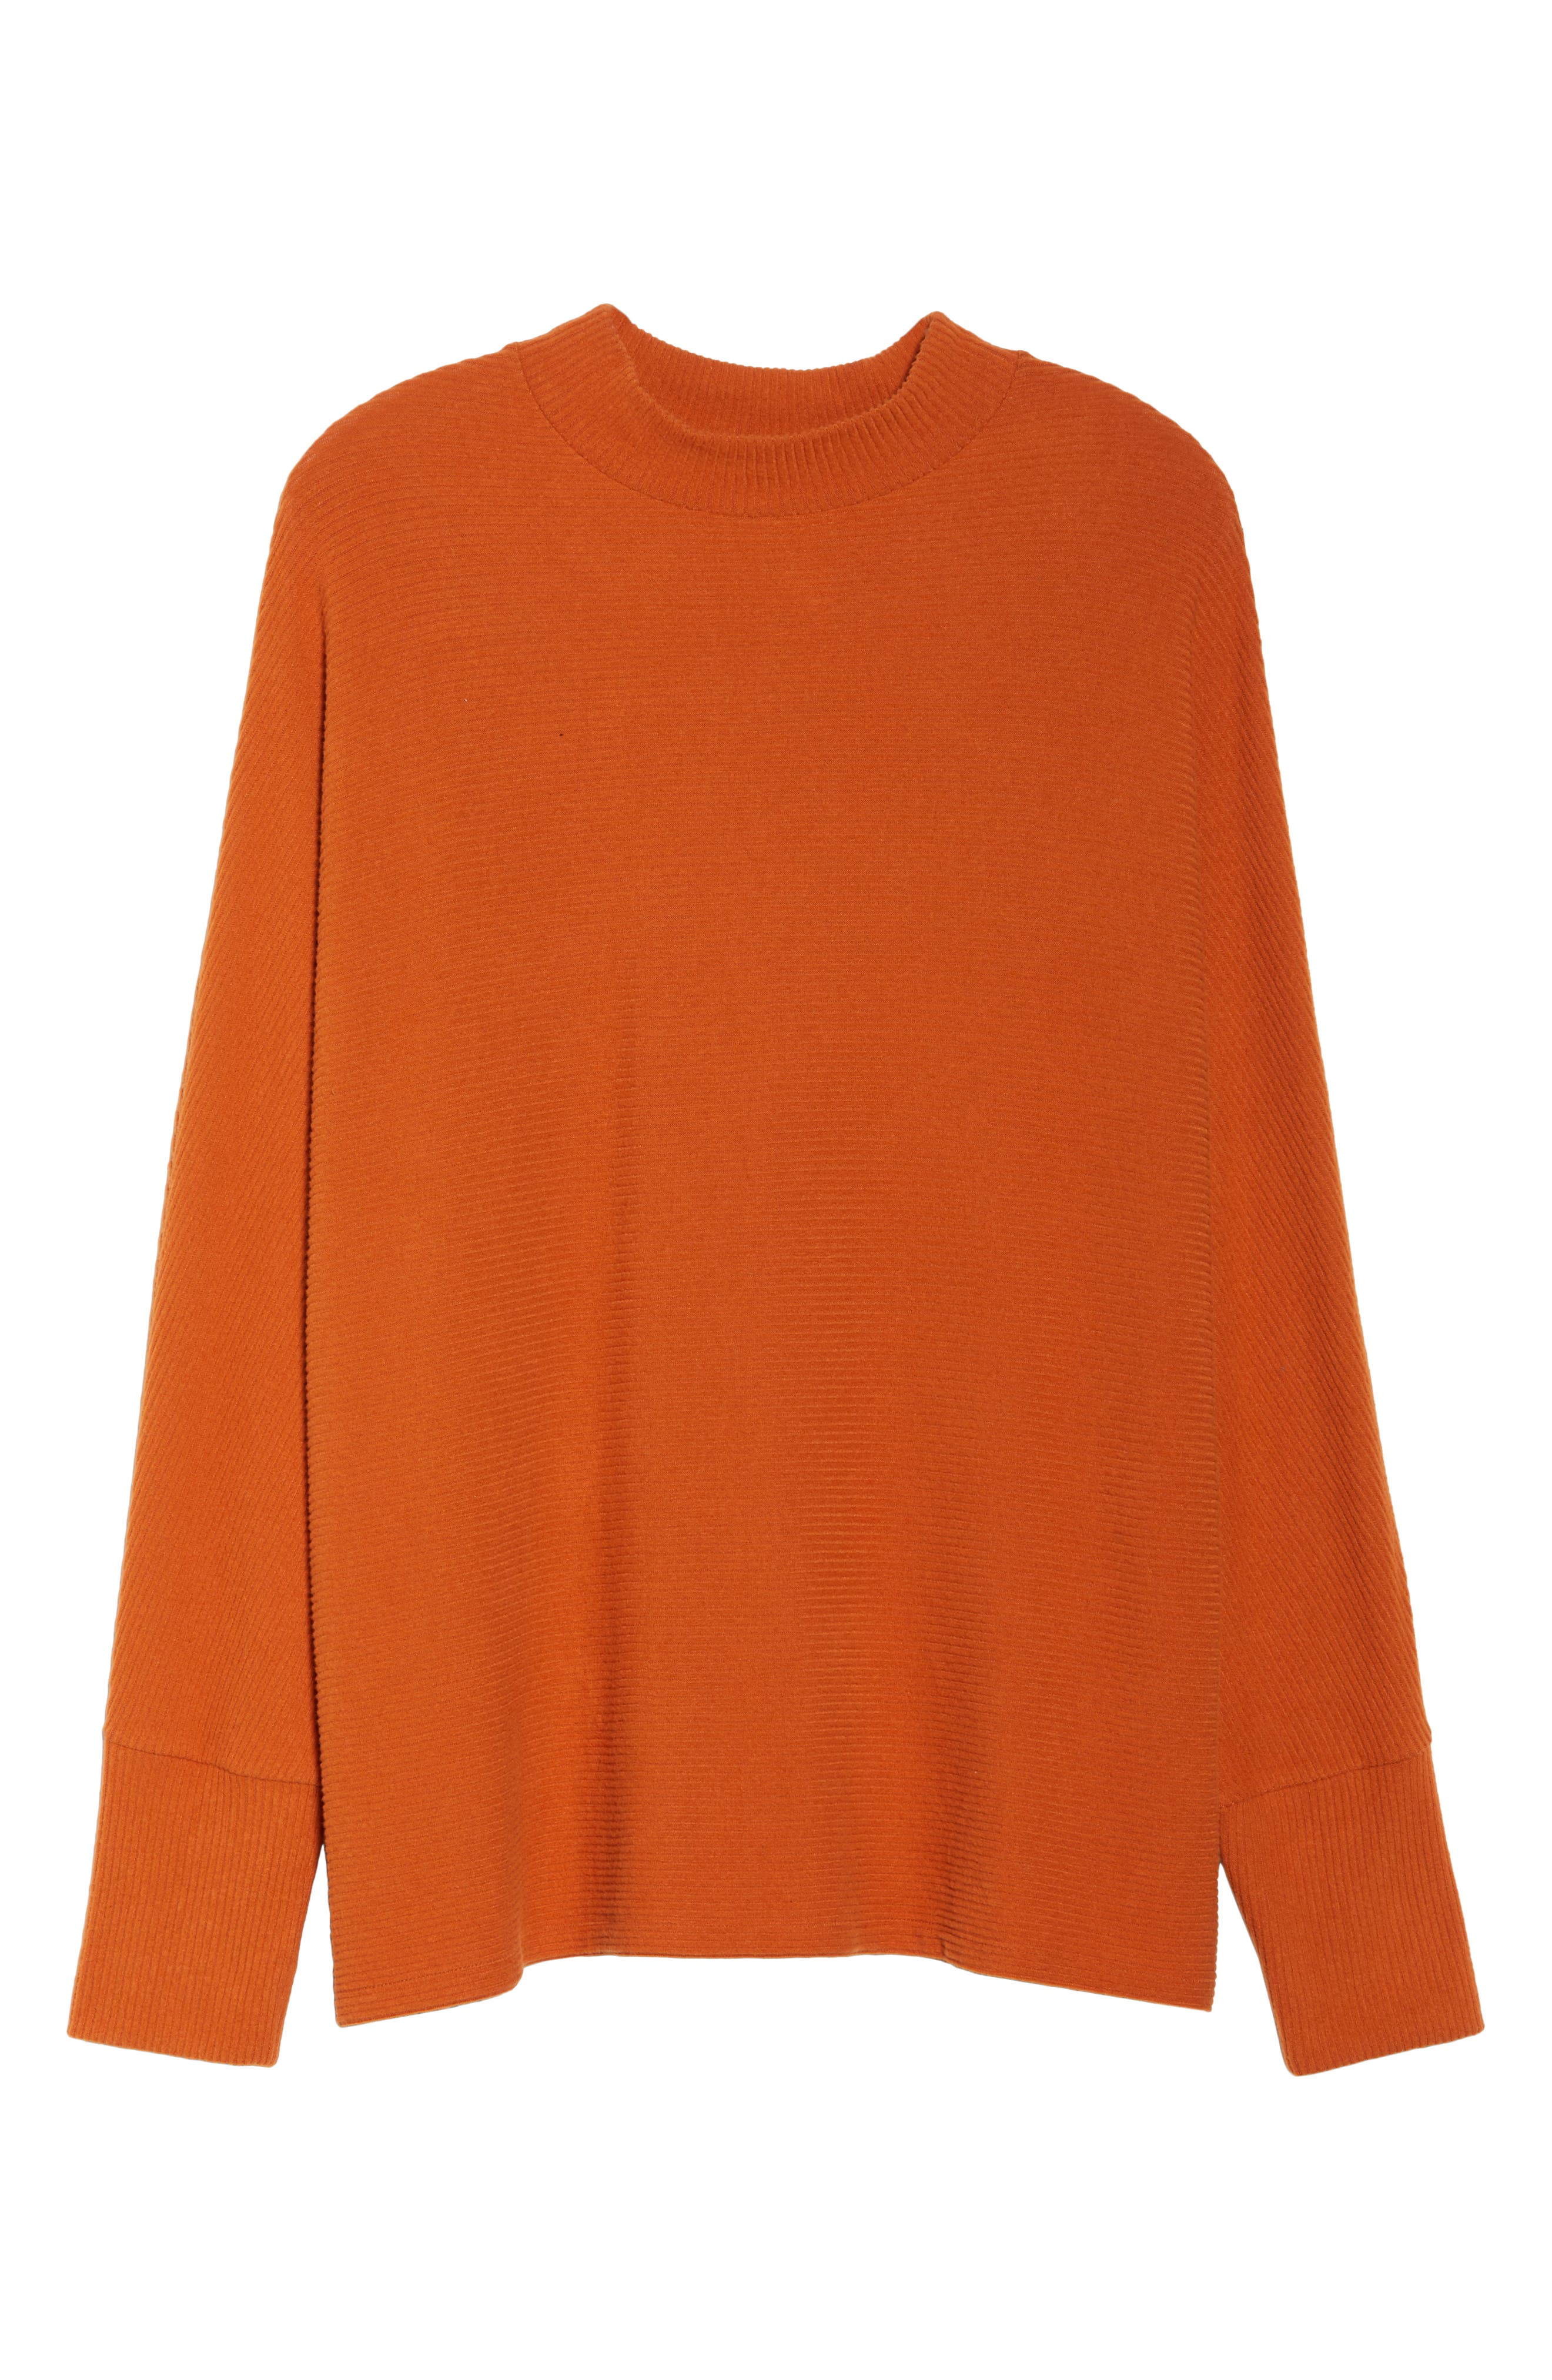 Dolman Sleeve Ribbed Top,                             Alternate thumbnail 11, color,                             RUST CIDER